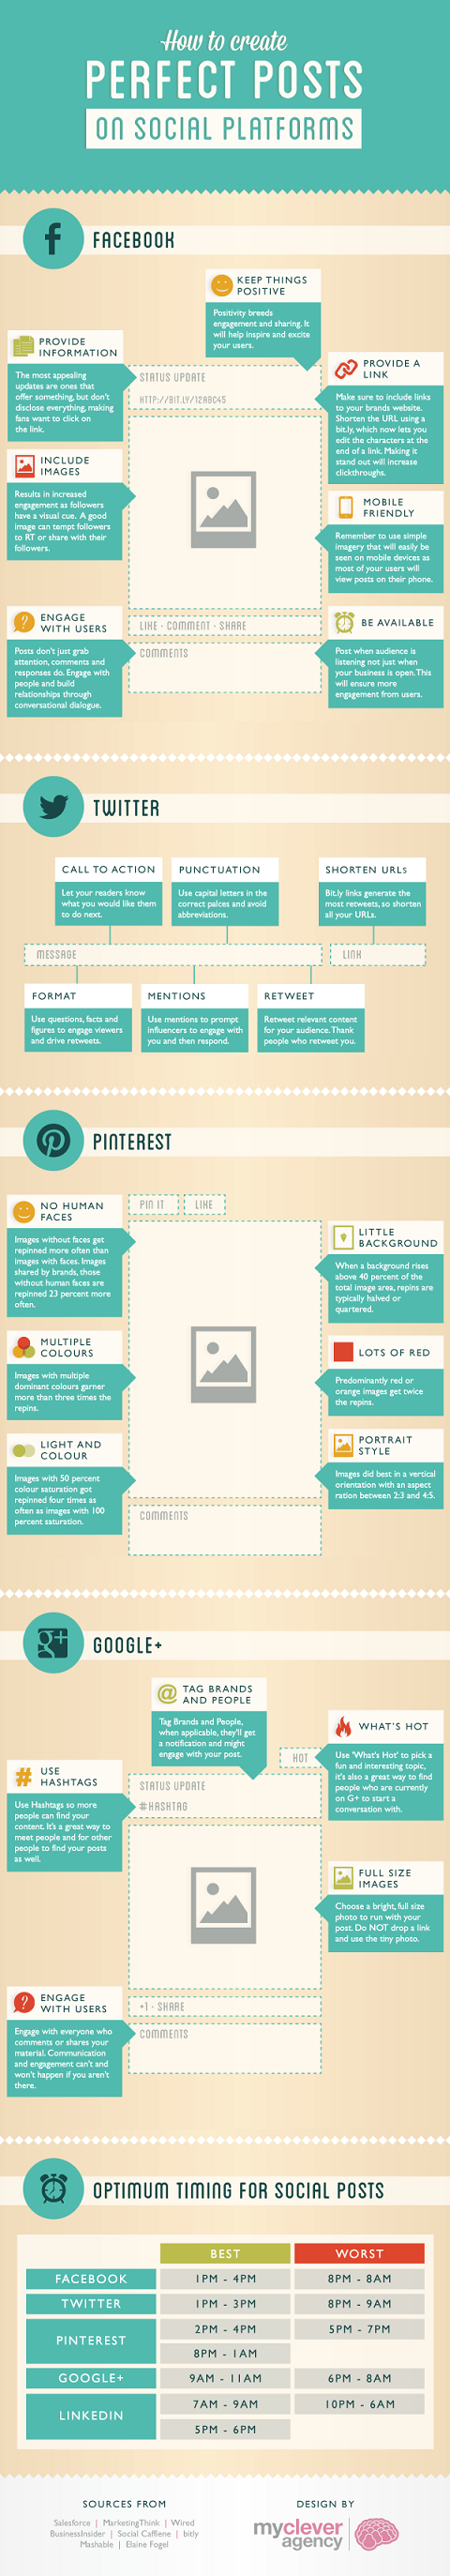 how to create the perfect #pinterest #google #facebook #twitter posts